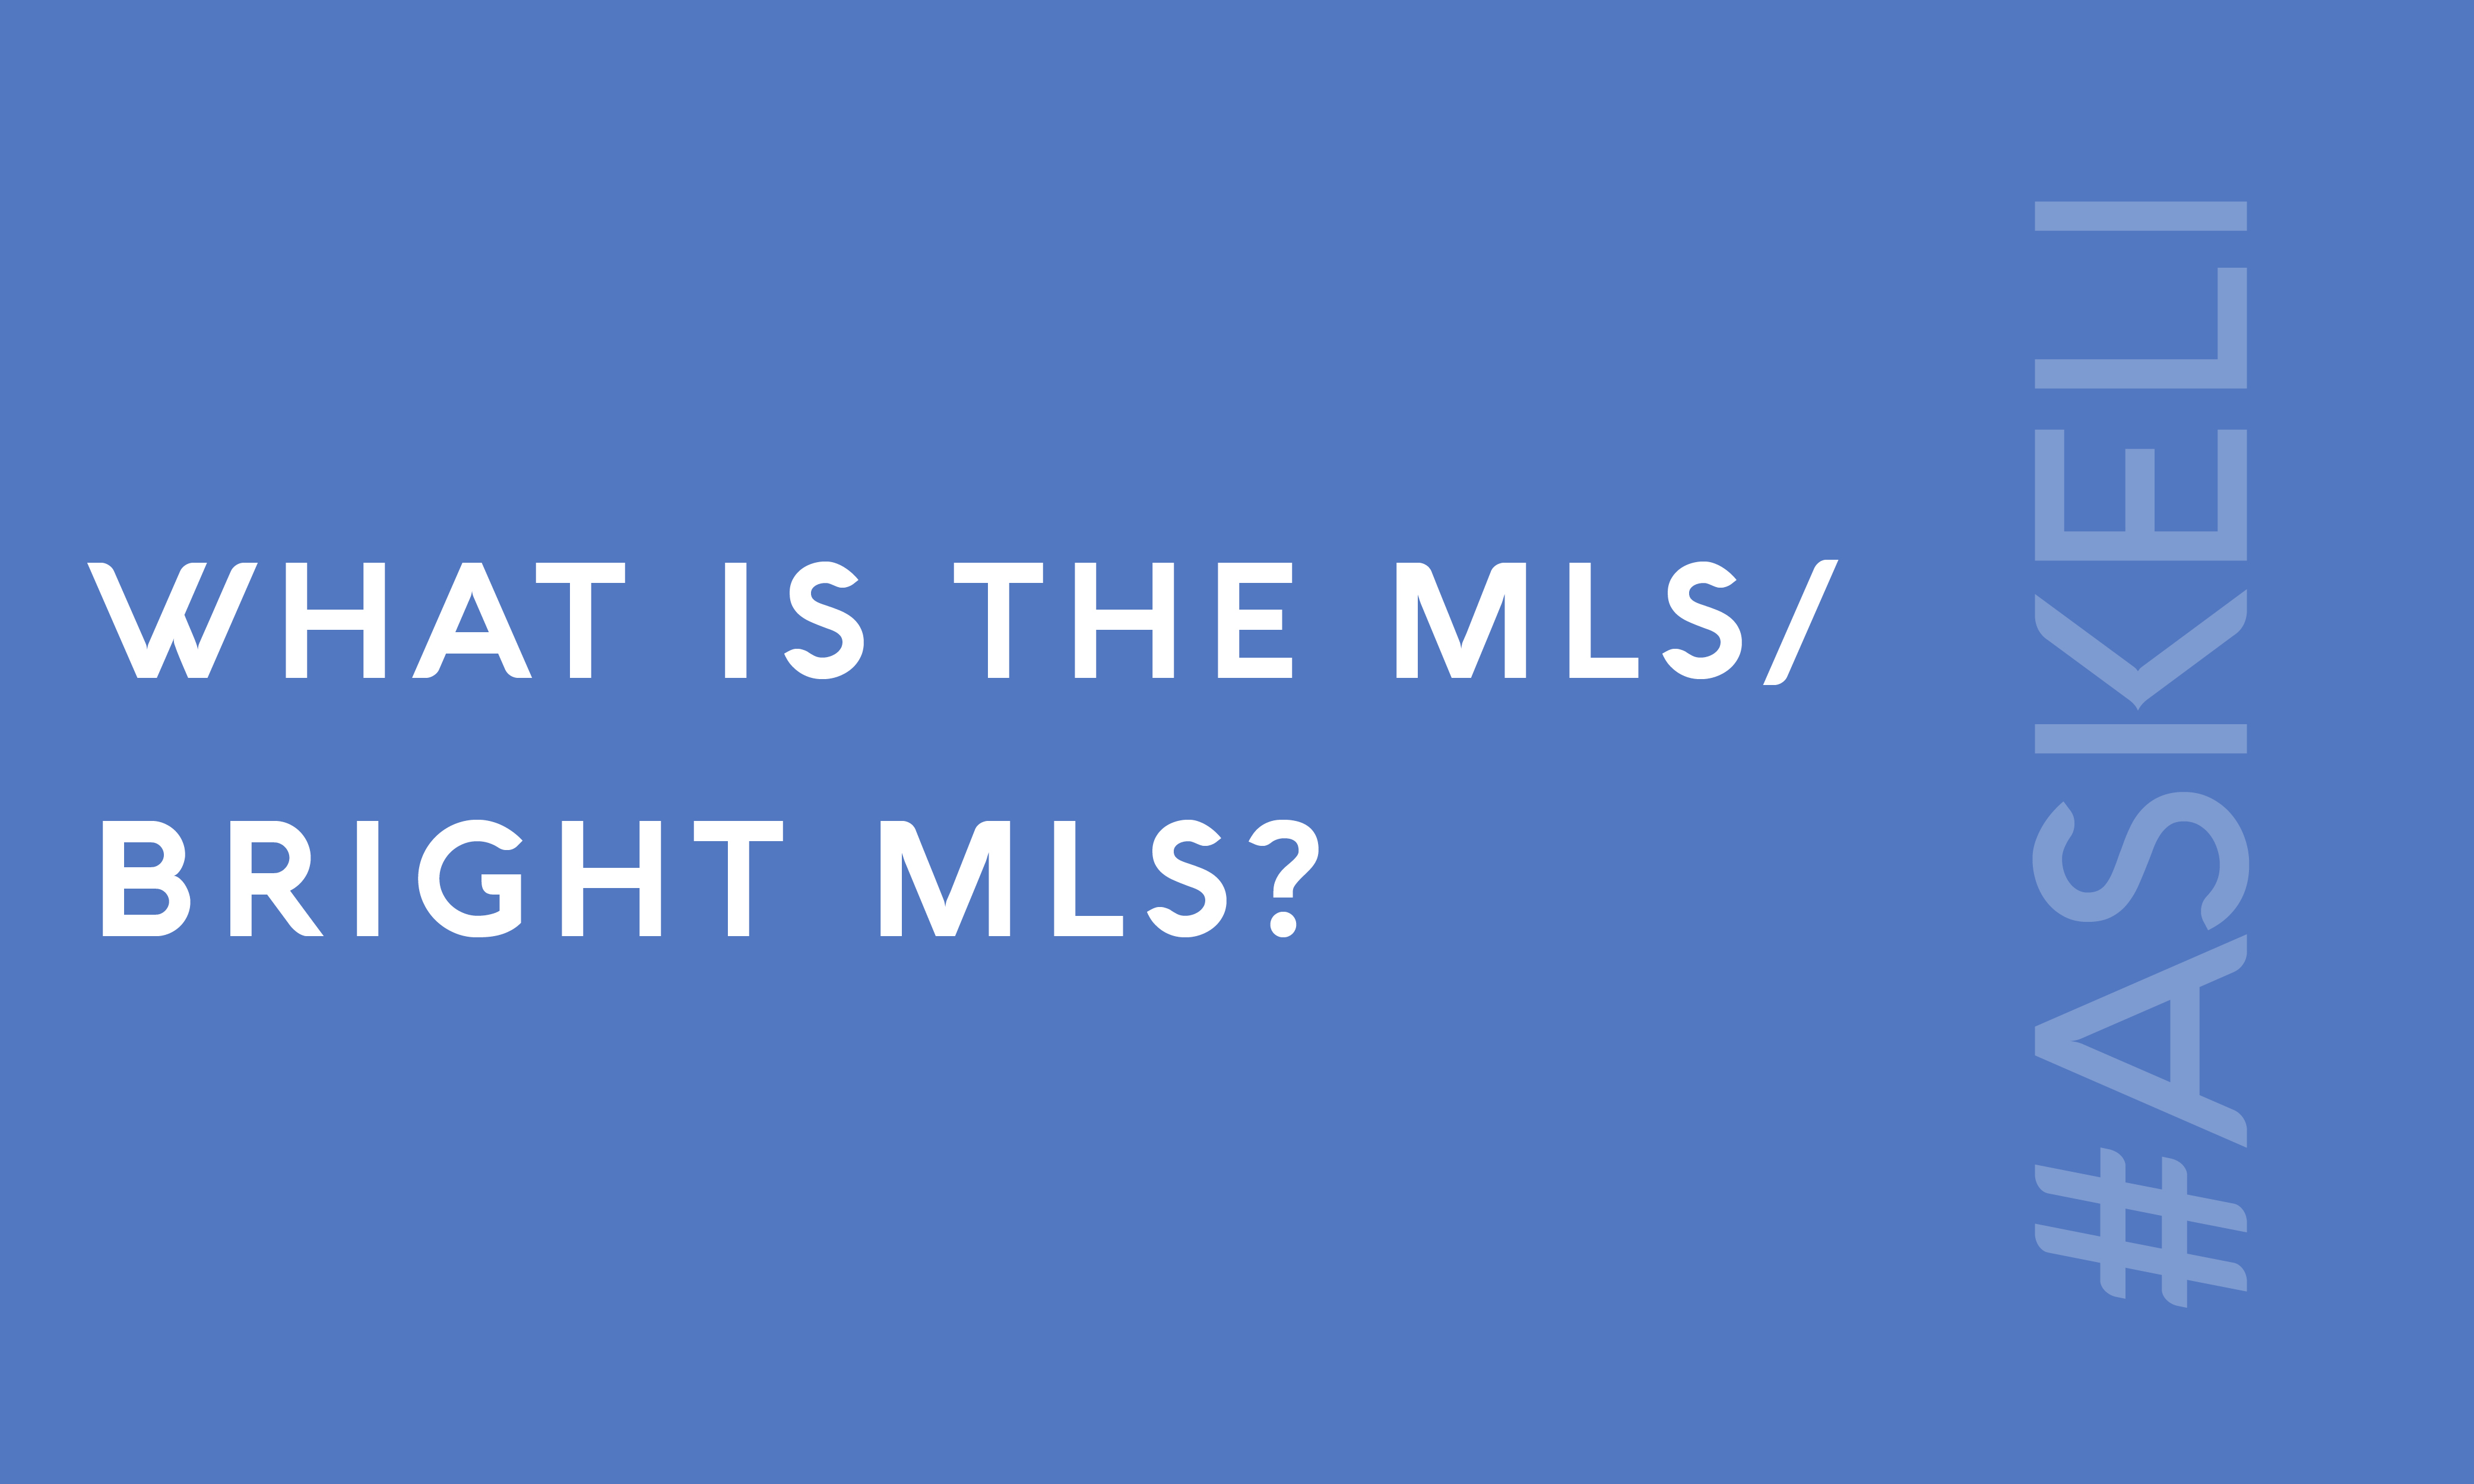 What is the MLS/Bright MLS?